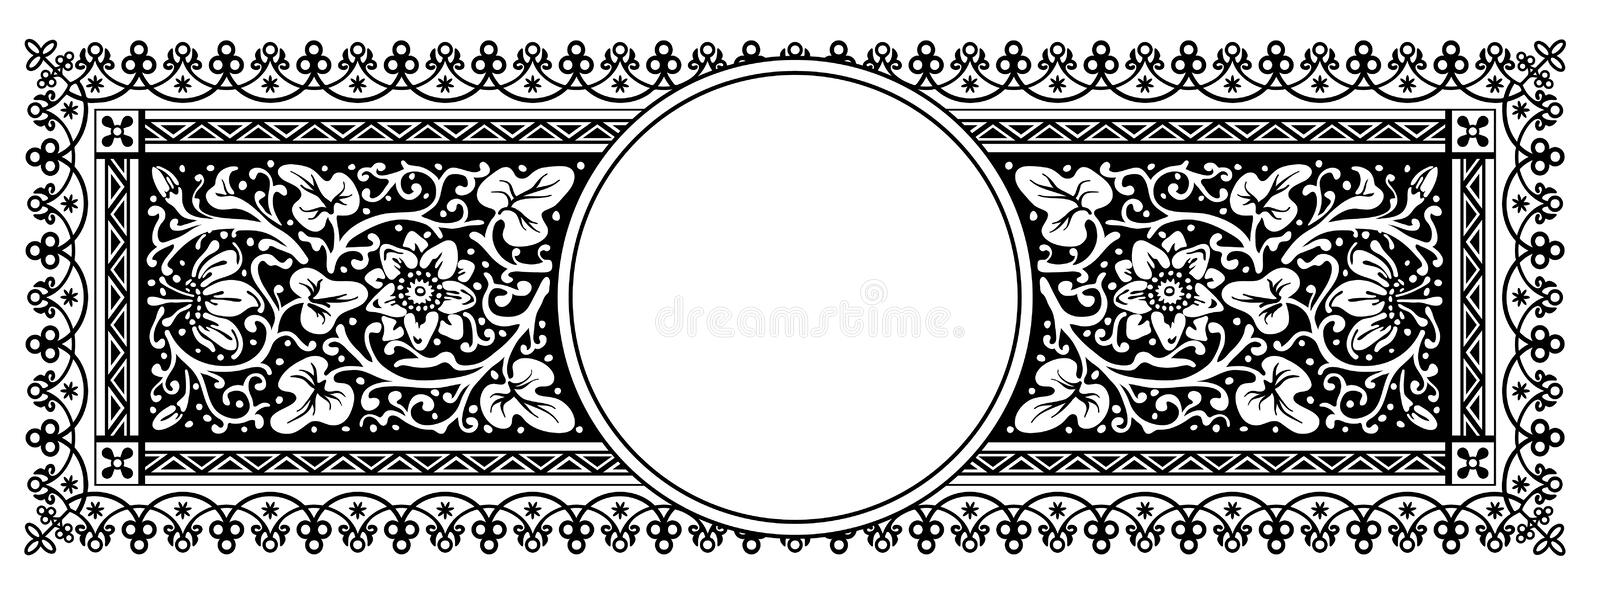 Flourish Vintage Vector Panorama Banner Design with Ornamental Frame vector illustration